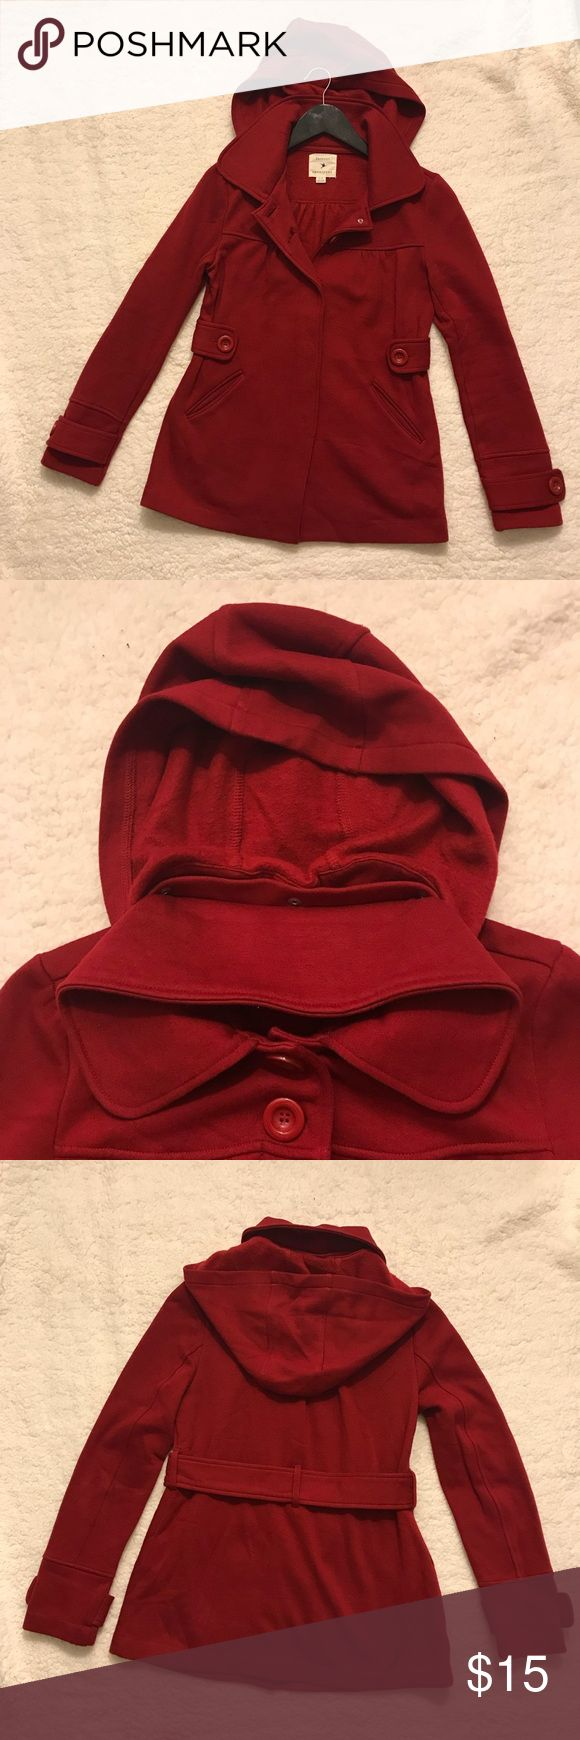 Forever 21 Red Jacket / Coat Forever 21 Red Jacket/Coat Size Small Hood is removable, button down with 2 pockets on the side  Worn only once for a few hours.  Still in like new condition. 60% cotton 40% polyester  ✨ Comes from a pet-free, smoke-free home ✨ If you would like any additional photos or have questions please let me know ✨ Sorry no trades but will listen to all fair offers.  Thanks for shopping! 😊 Forever 21 Jackets & Coats